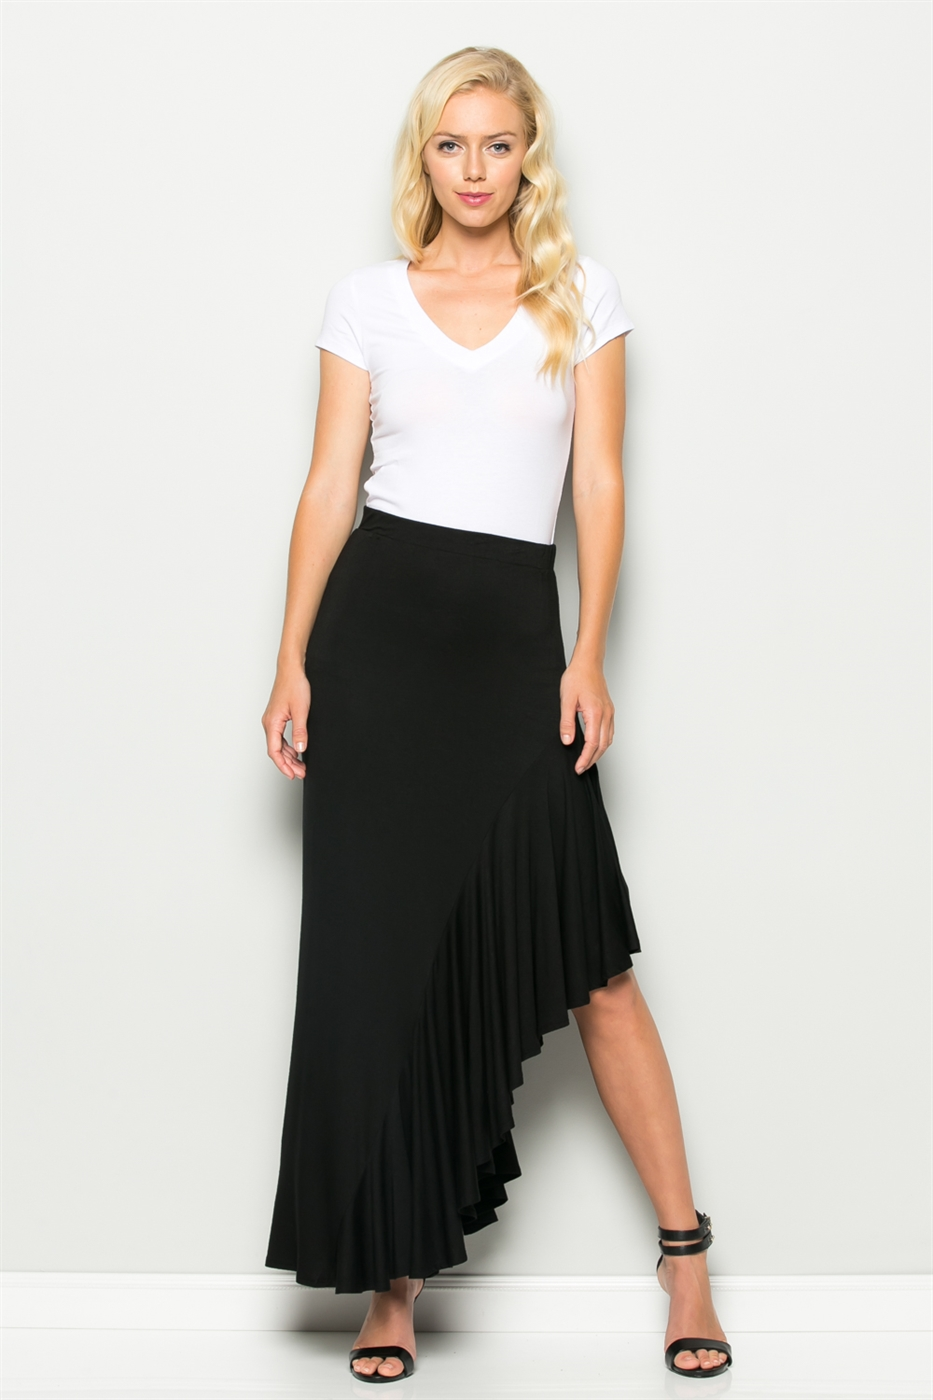 SIDE RUFFLE MAXI SKIRT - orangeshine.com